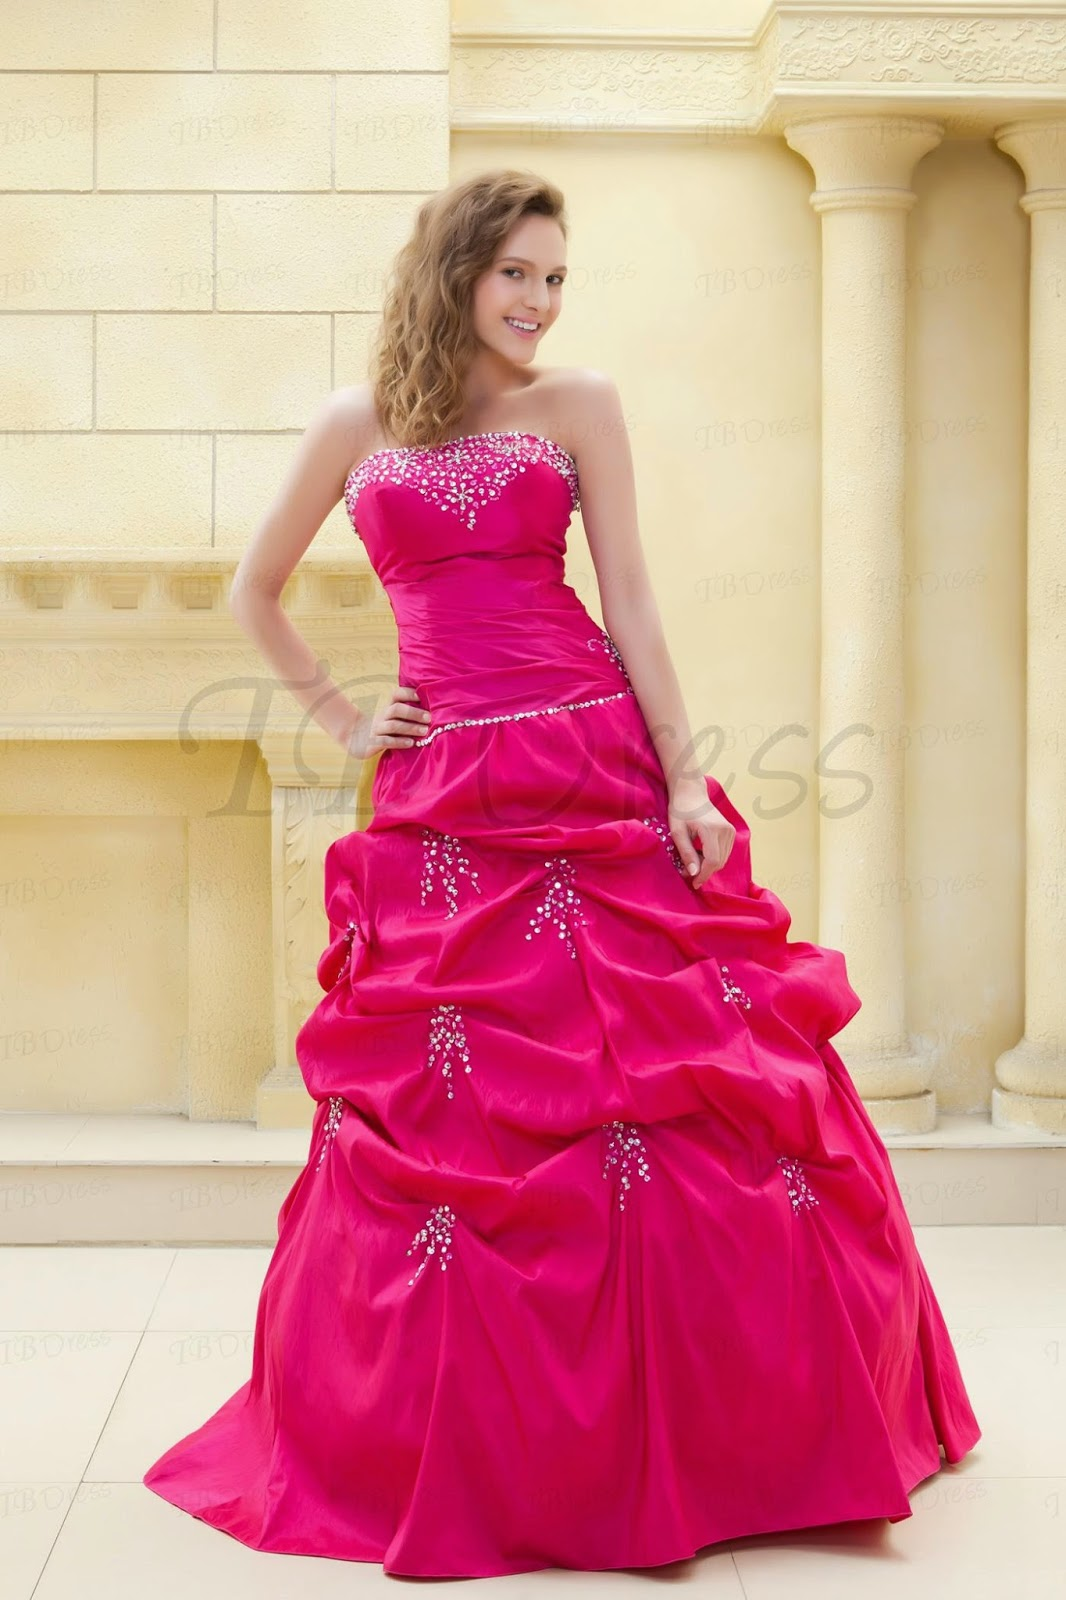 http://www.tbdress.com/Cheap-Quinceanera-Dresses-4374/